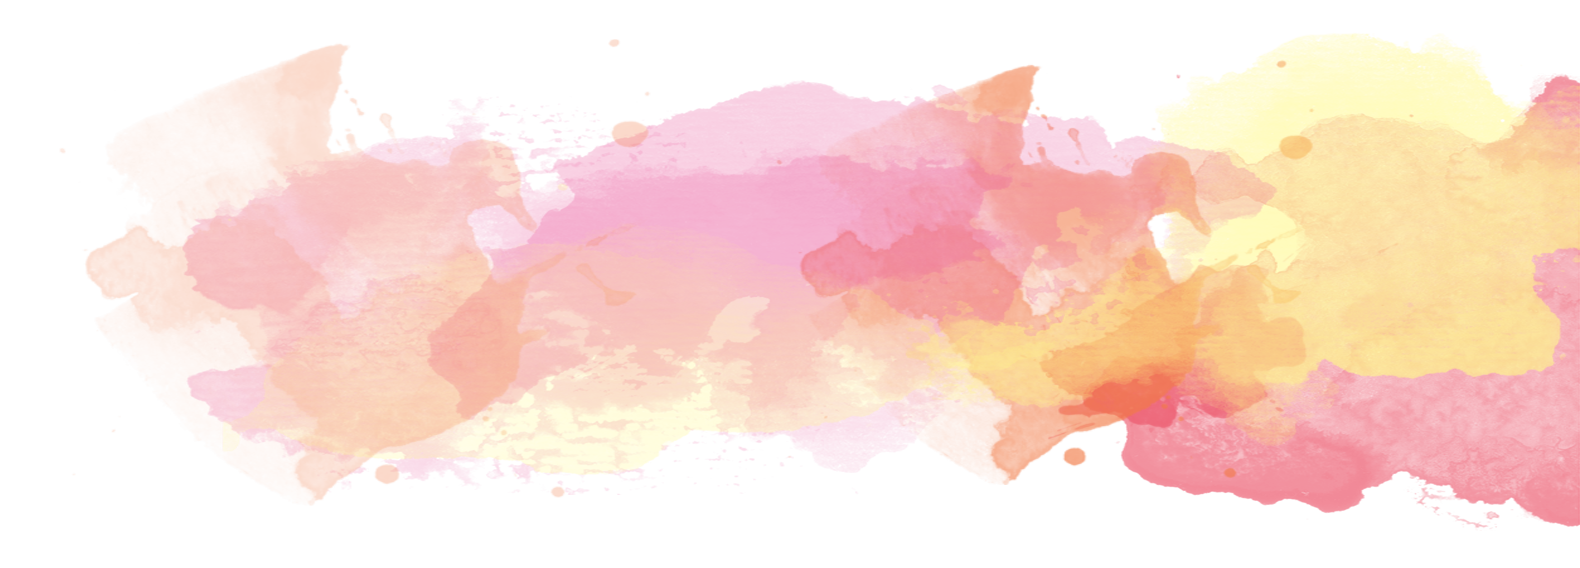 Water color background png. Watercolor painting orange magenta